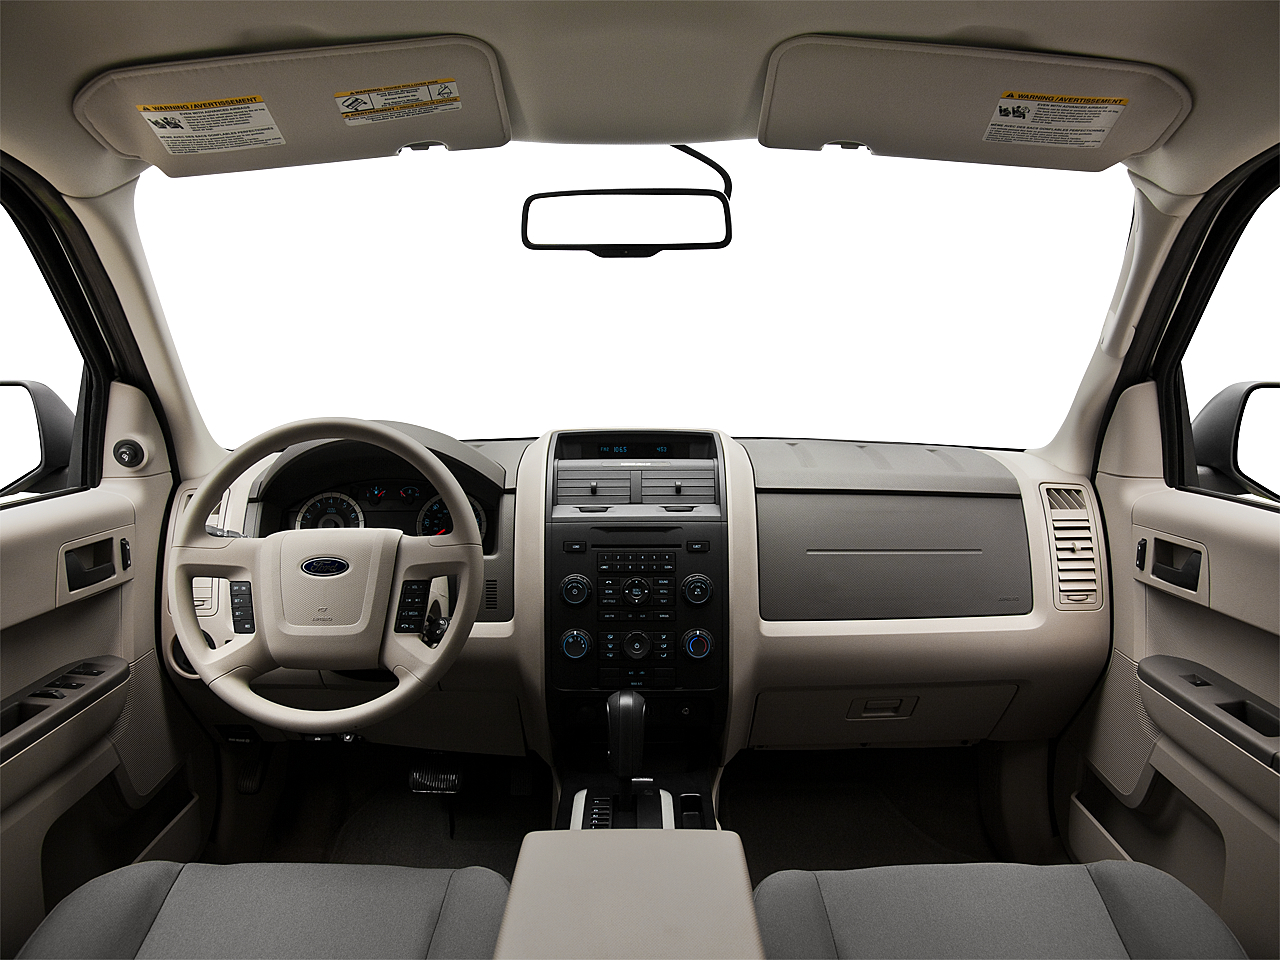 2011 Ford Escape XLS I4, centered wide dash shot